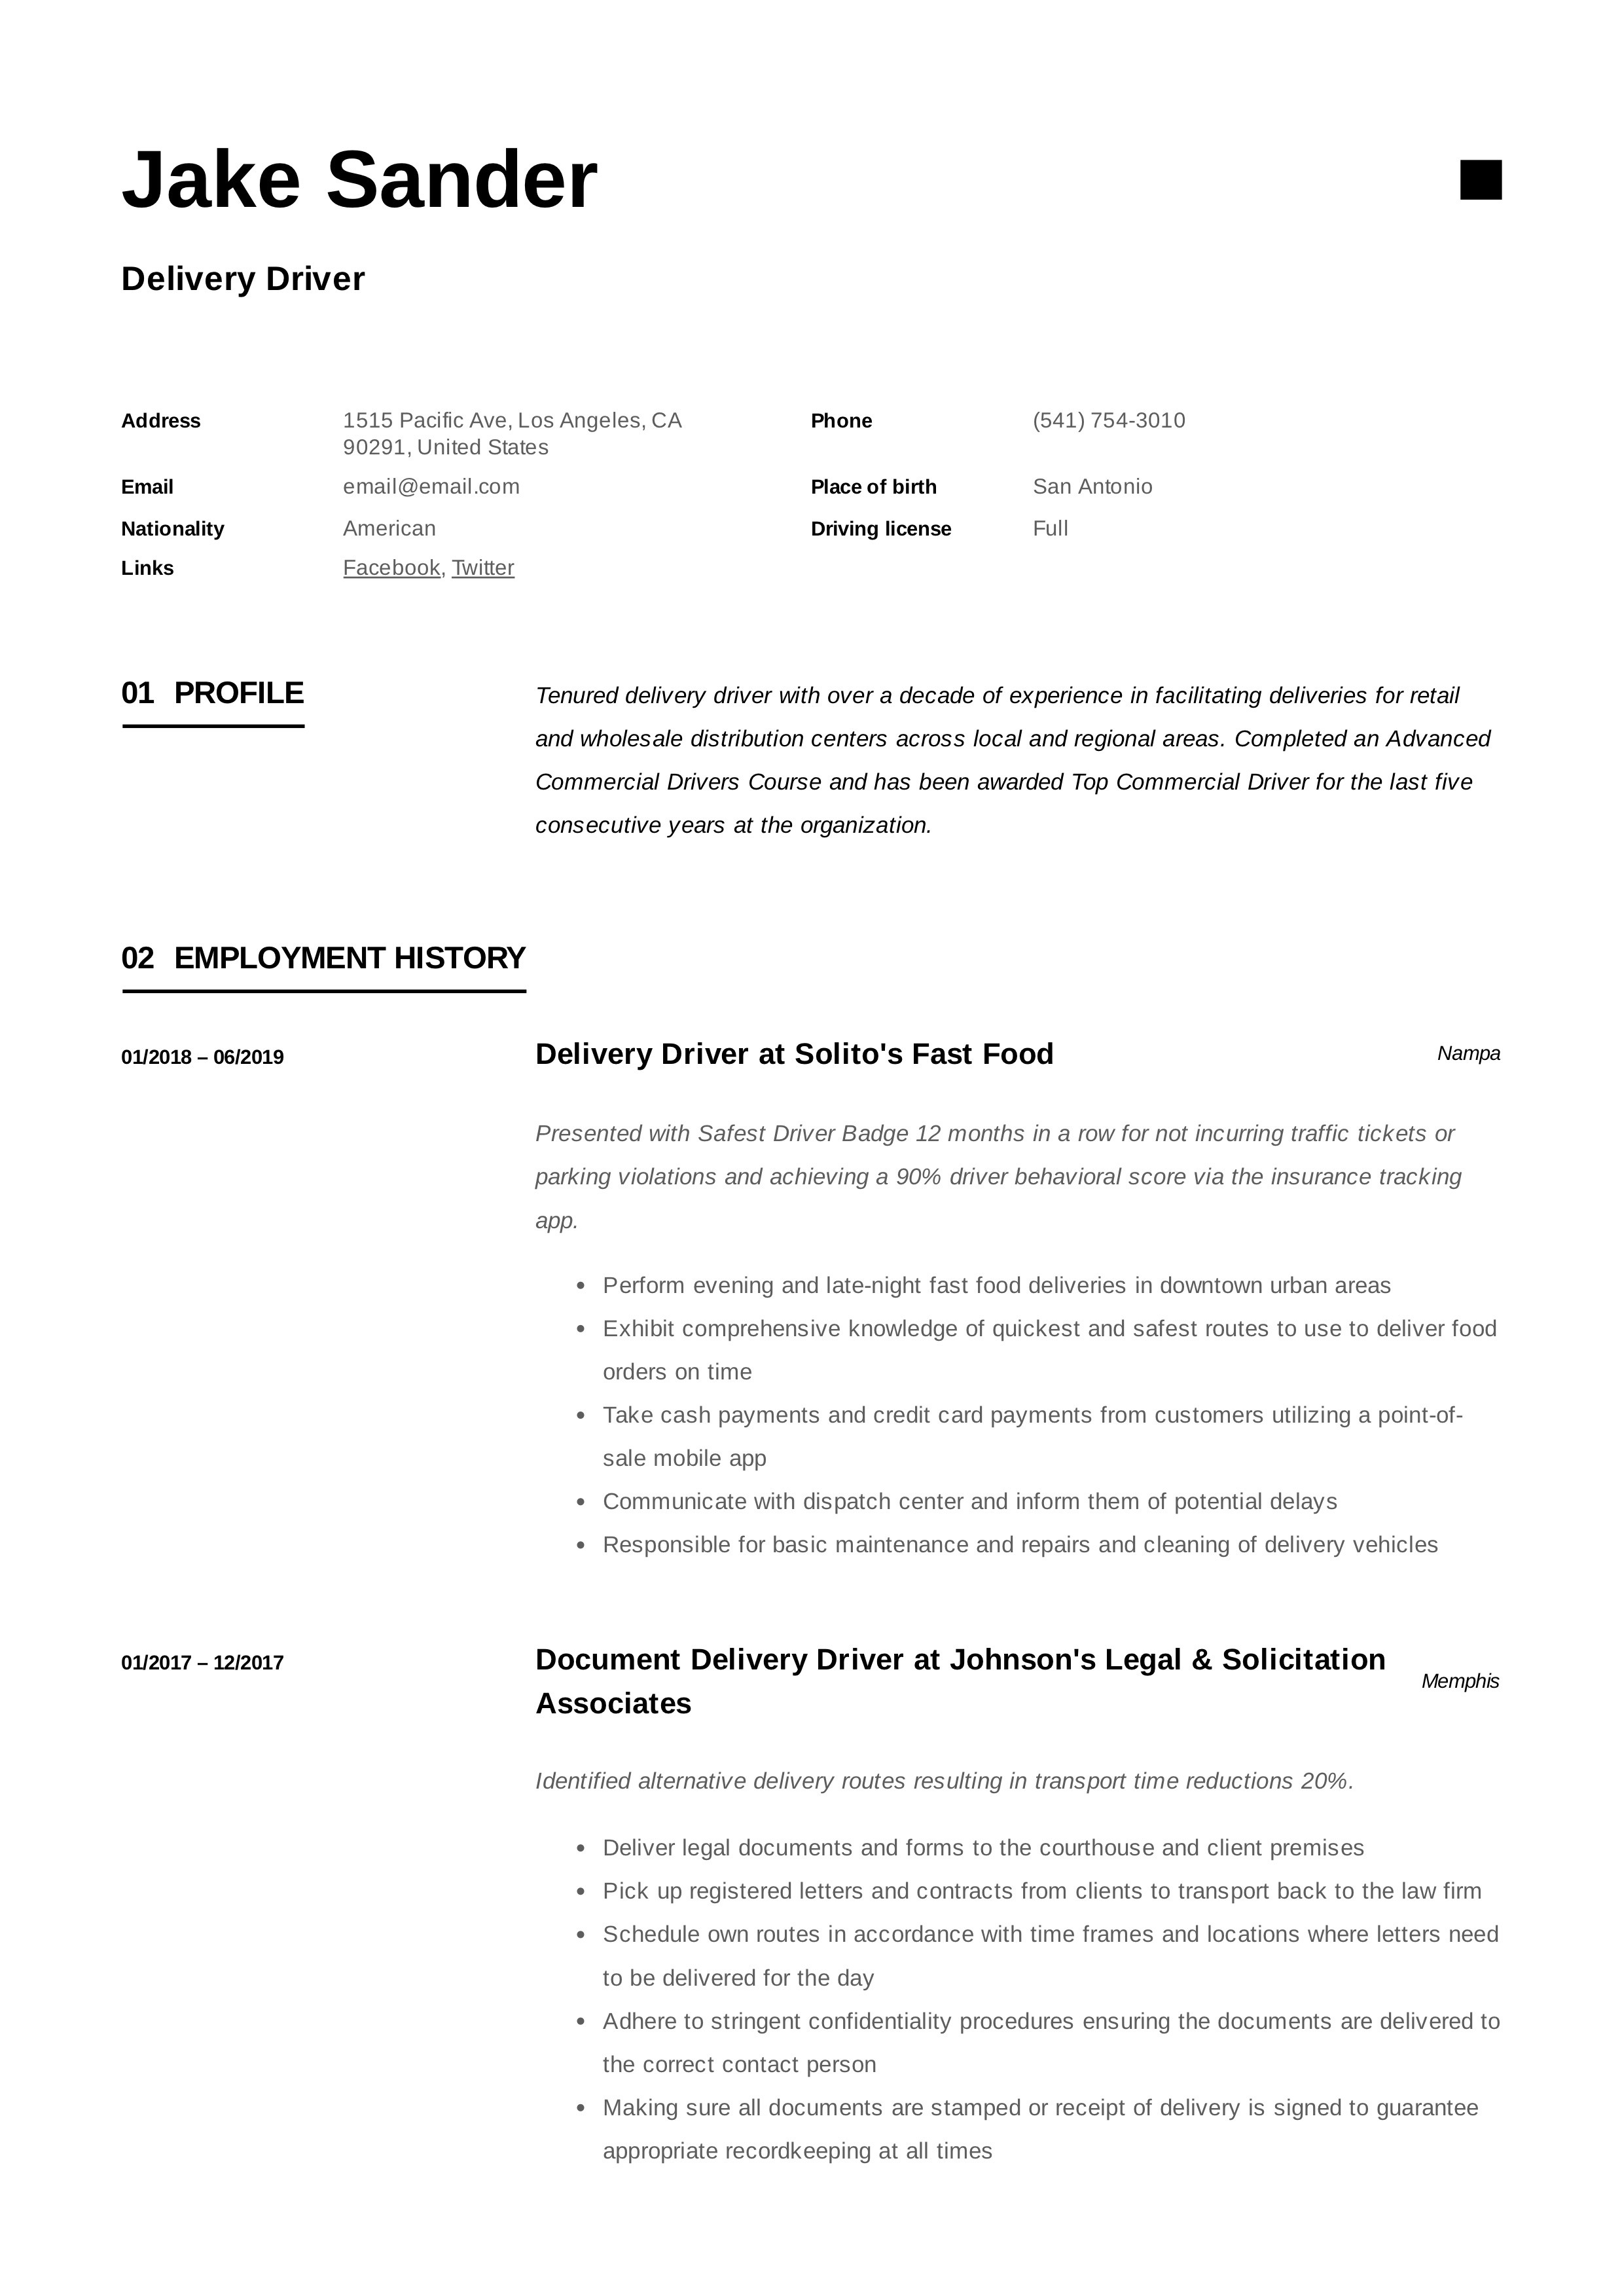 Help Writing My Resume 2020 Help Writing My Resume 2020 By